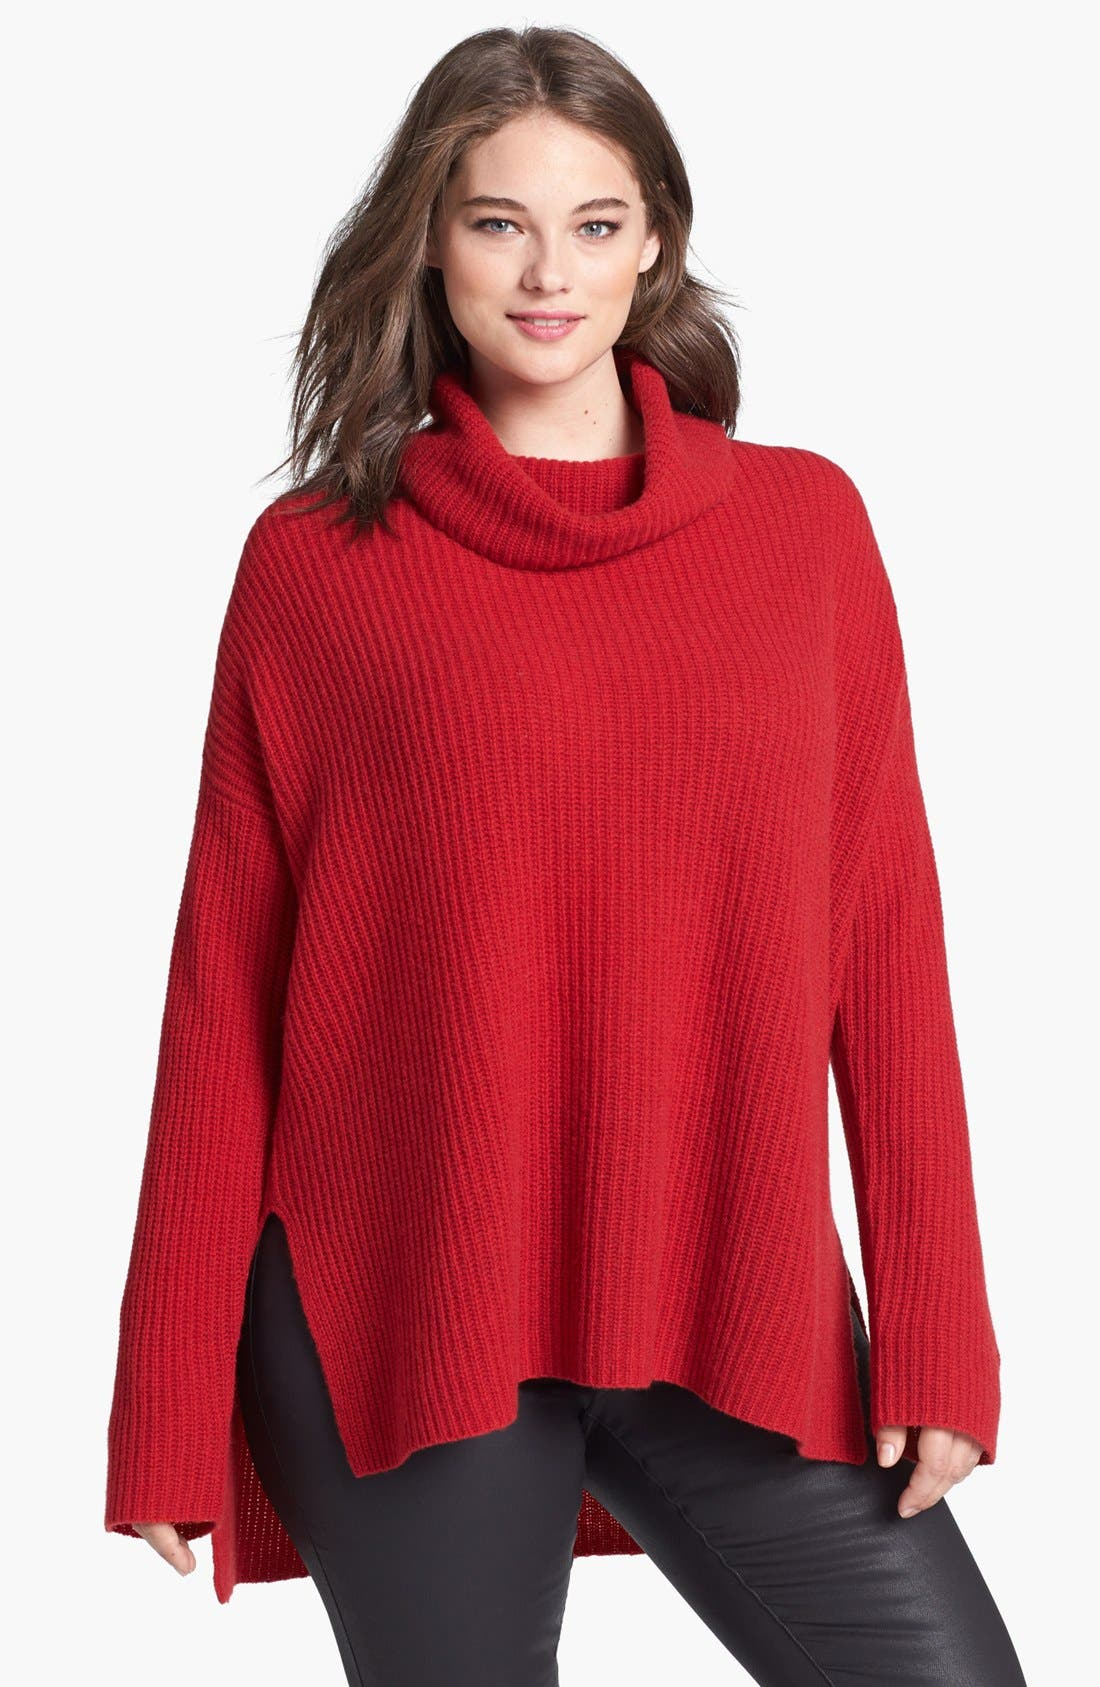 Alternate Image 1 Selected - Eileen Fisher Yak & Merino Turtleneck Poncho Sweater (Plus Size)